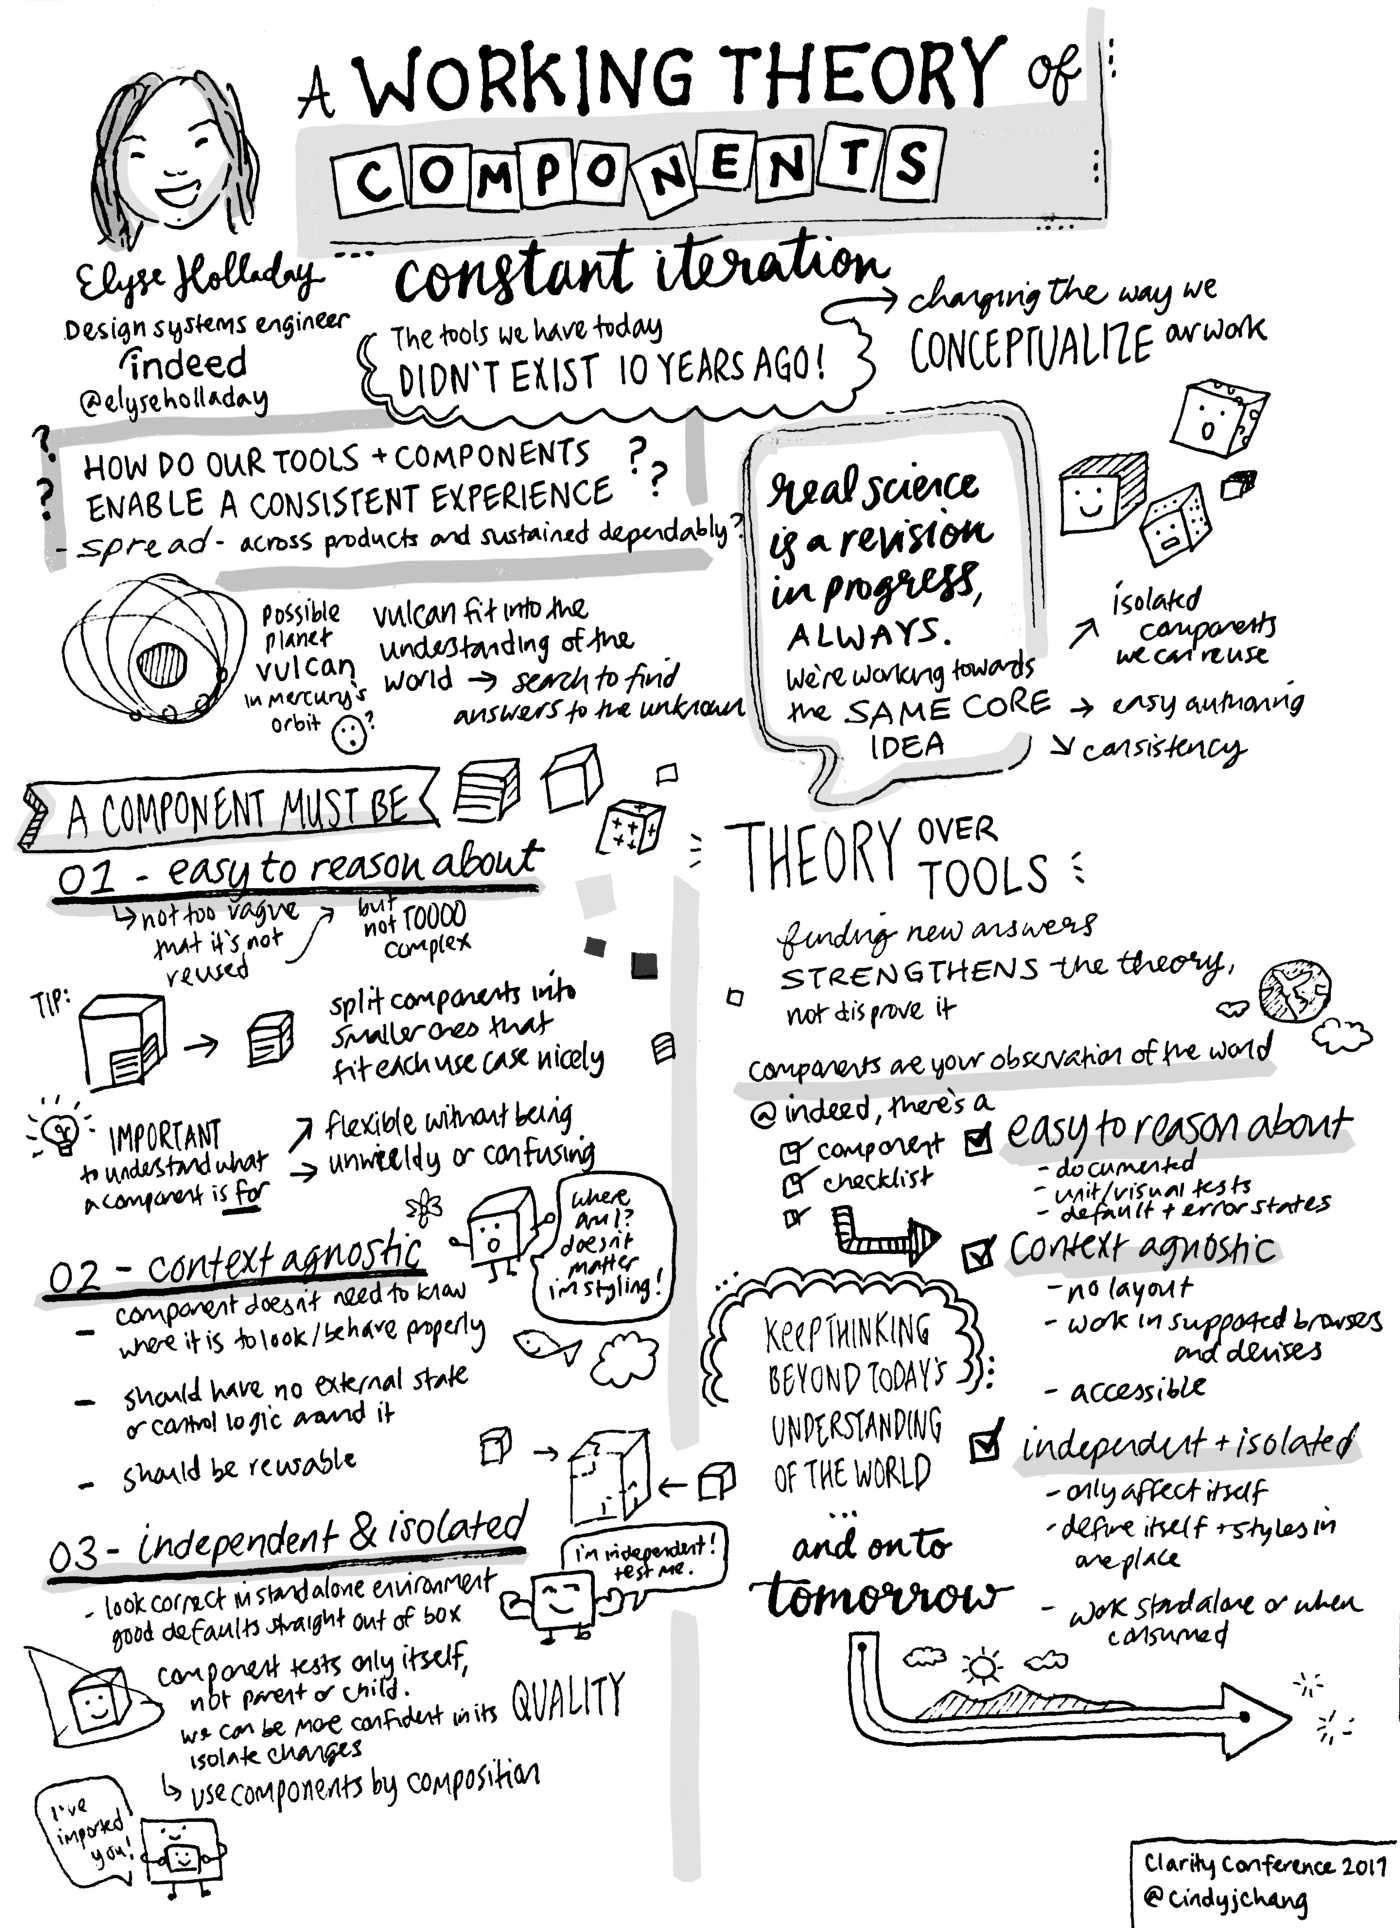 Sketchnotes from Clarity Conf by Cindy Chang